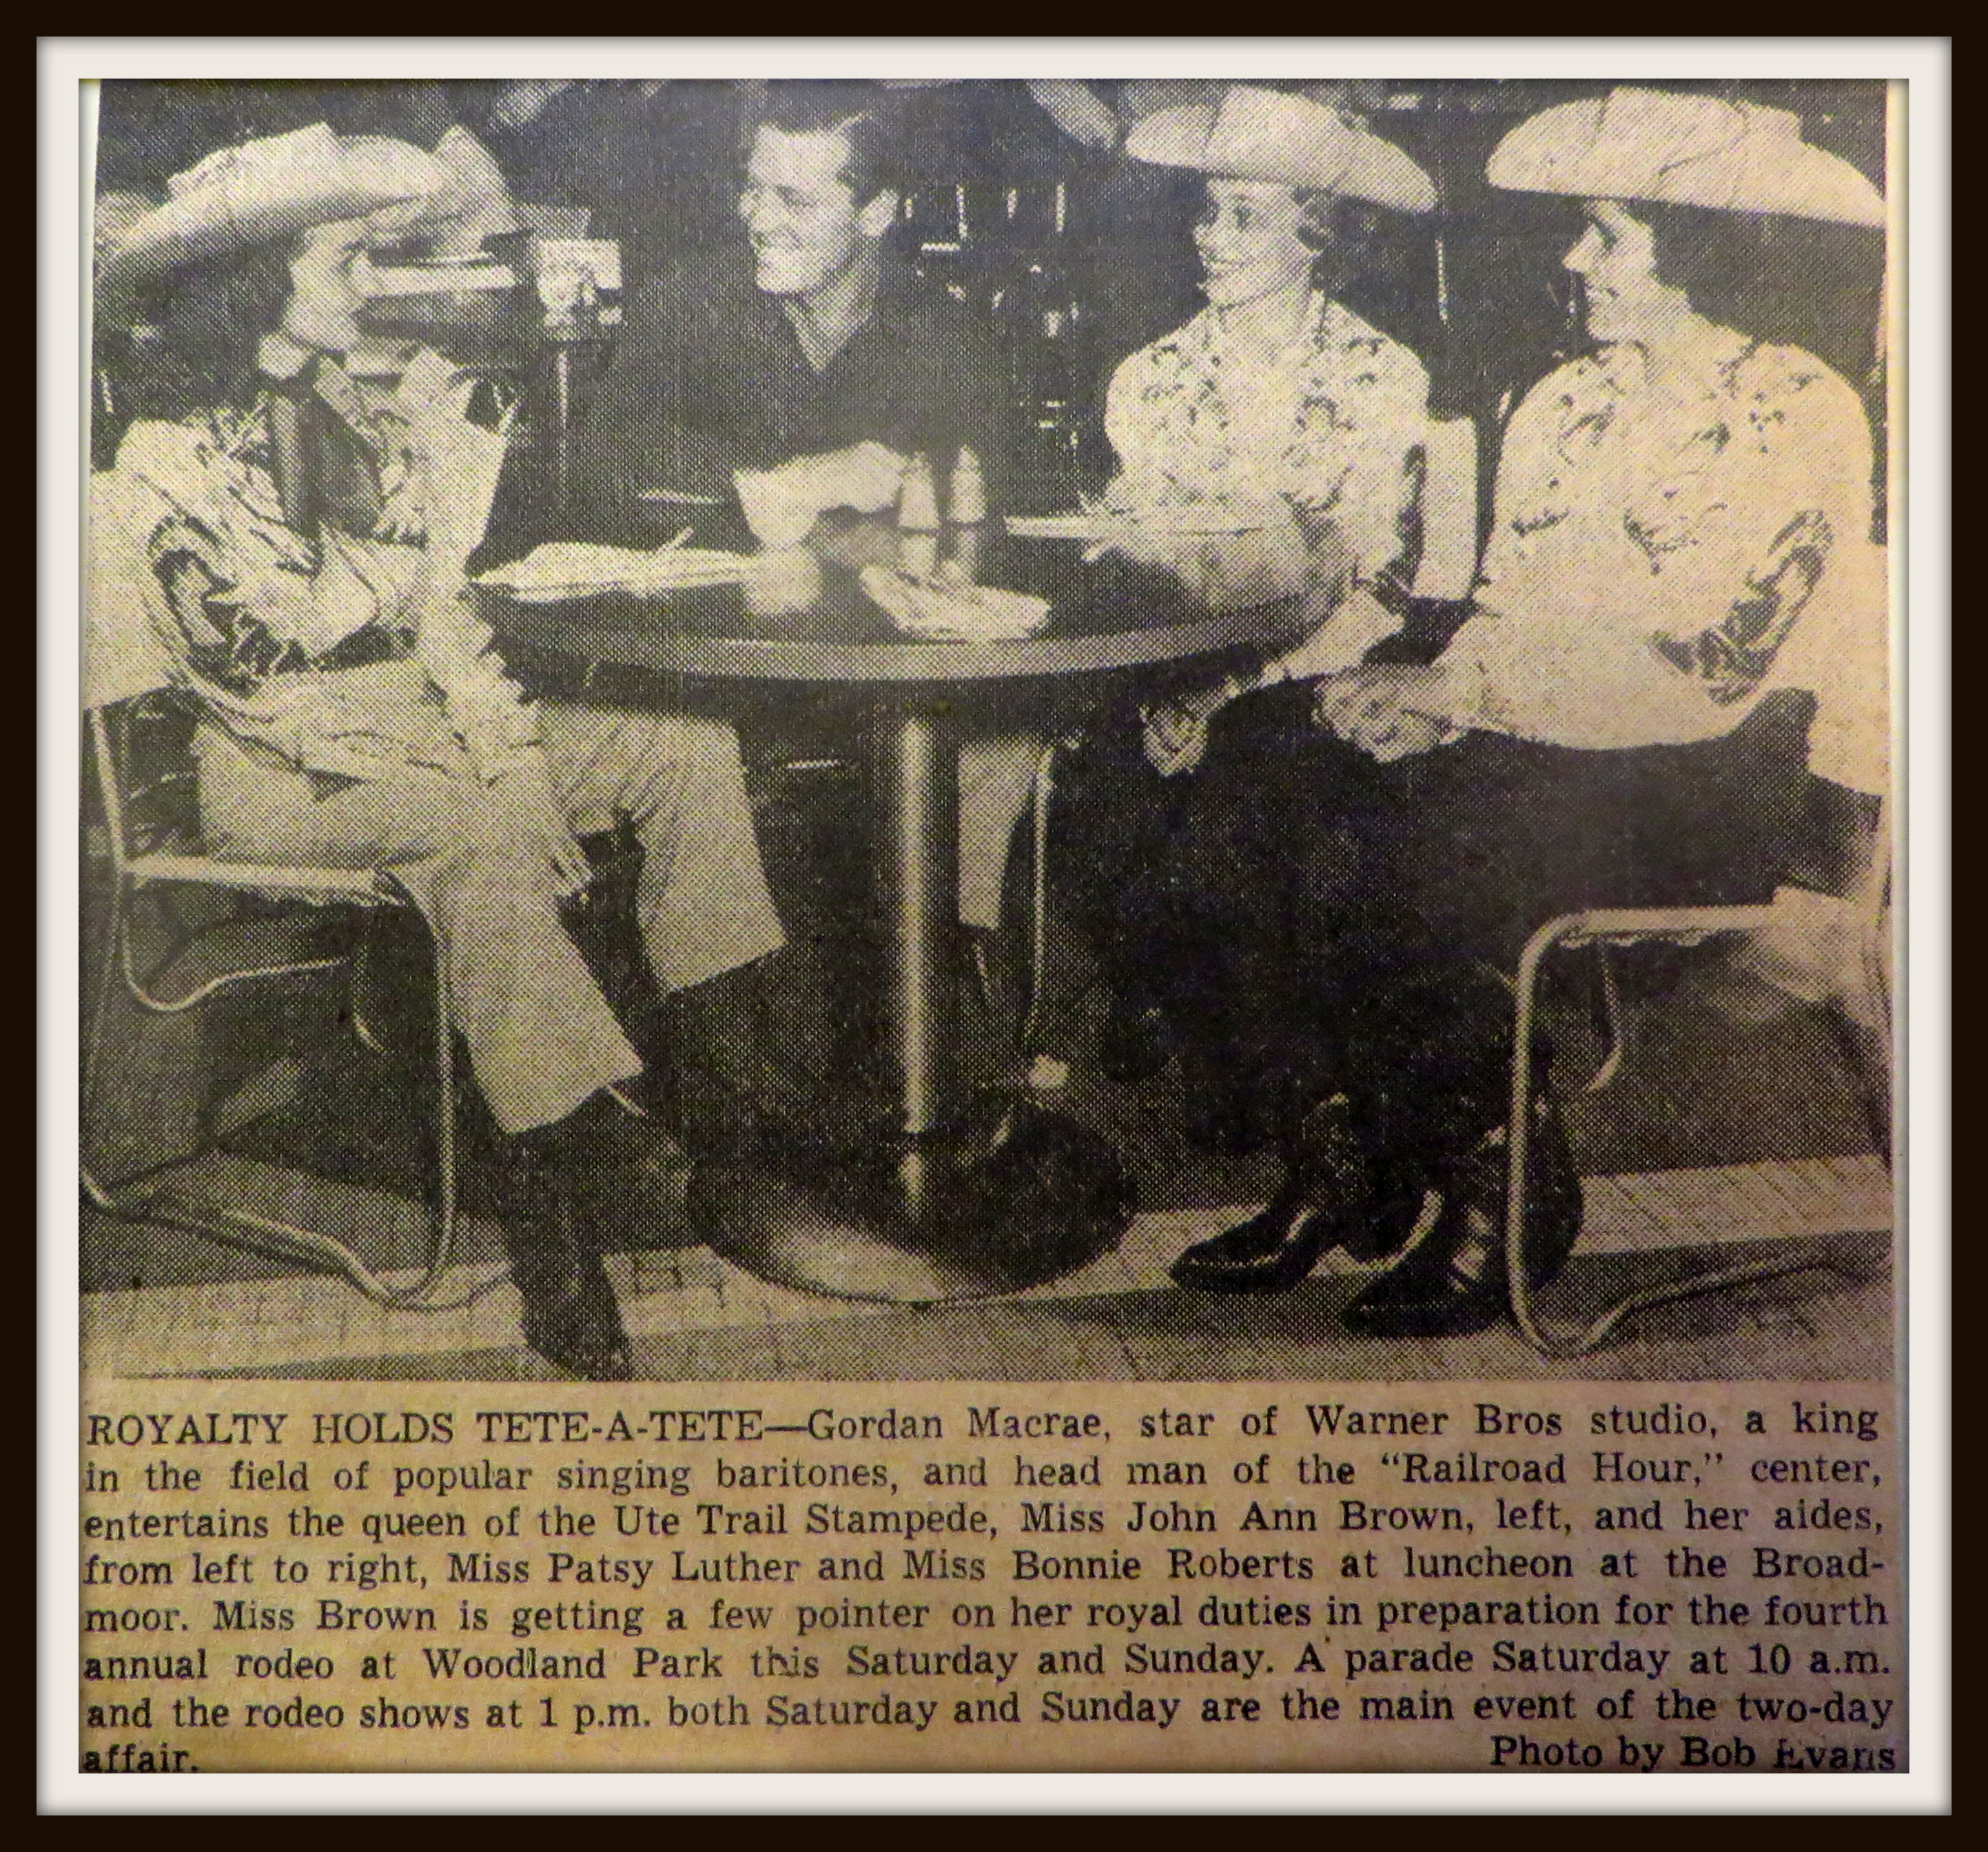 i 1951, John Ann with movie star and aides